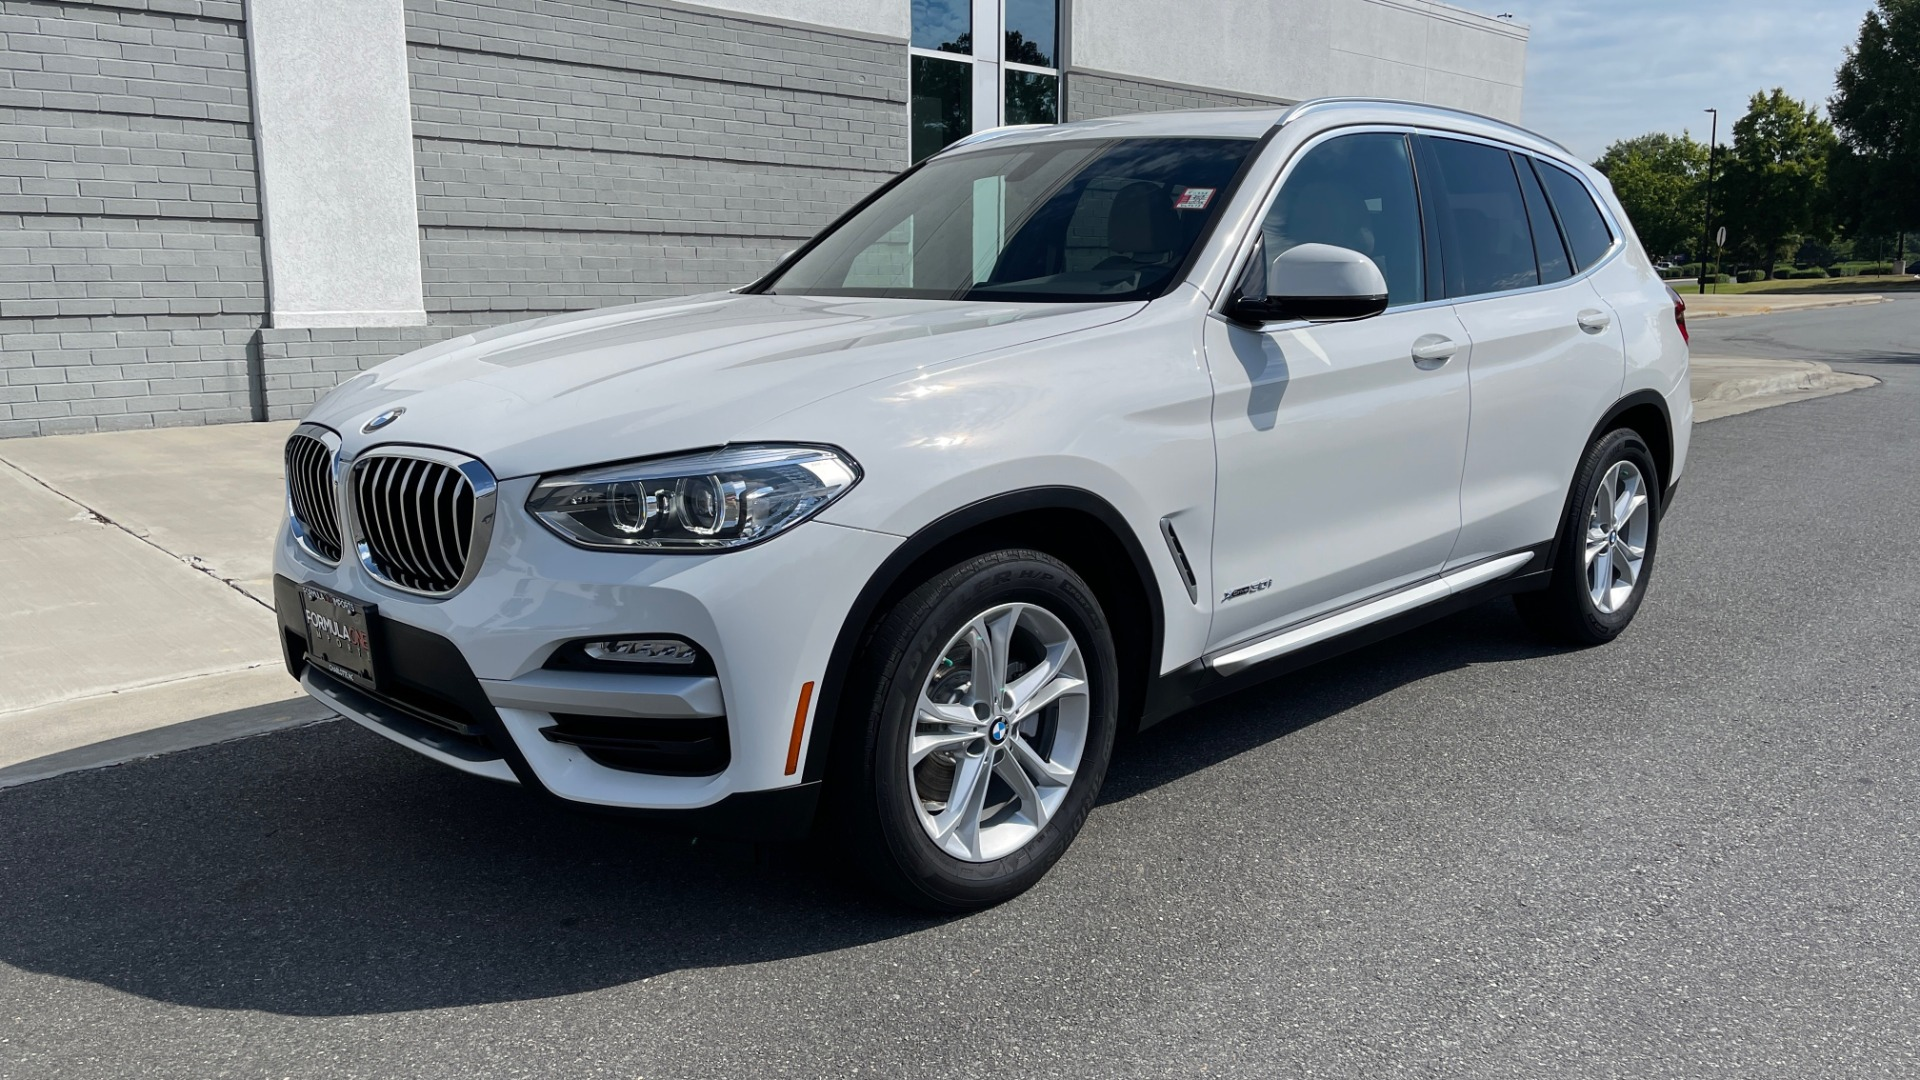 Used 2018 BMW X3 XDRIVE30I CONVENIENCE PKG / HEATED FRONT SEATS / REARVIEW for sale $36,595 at Formula Imports in Charlotte NC 28227 3